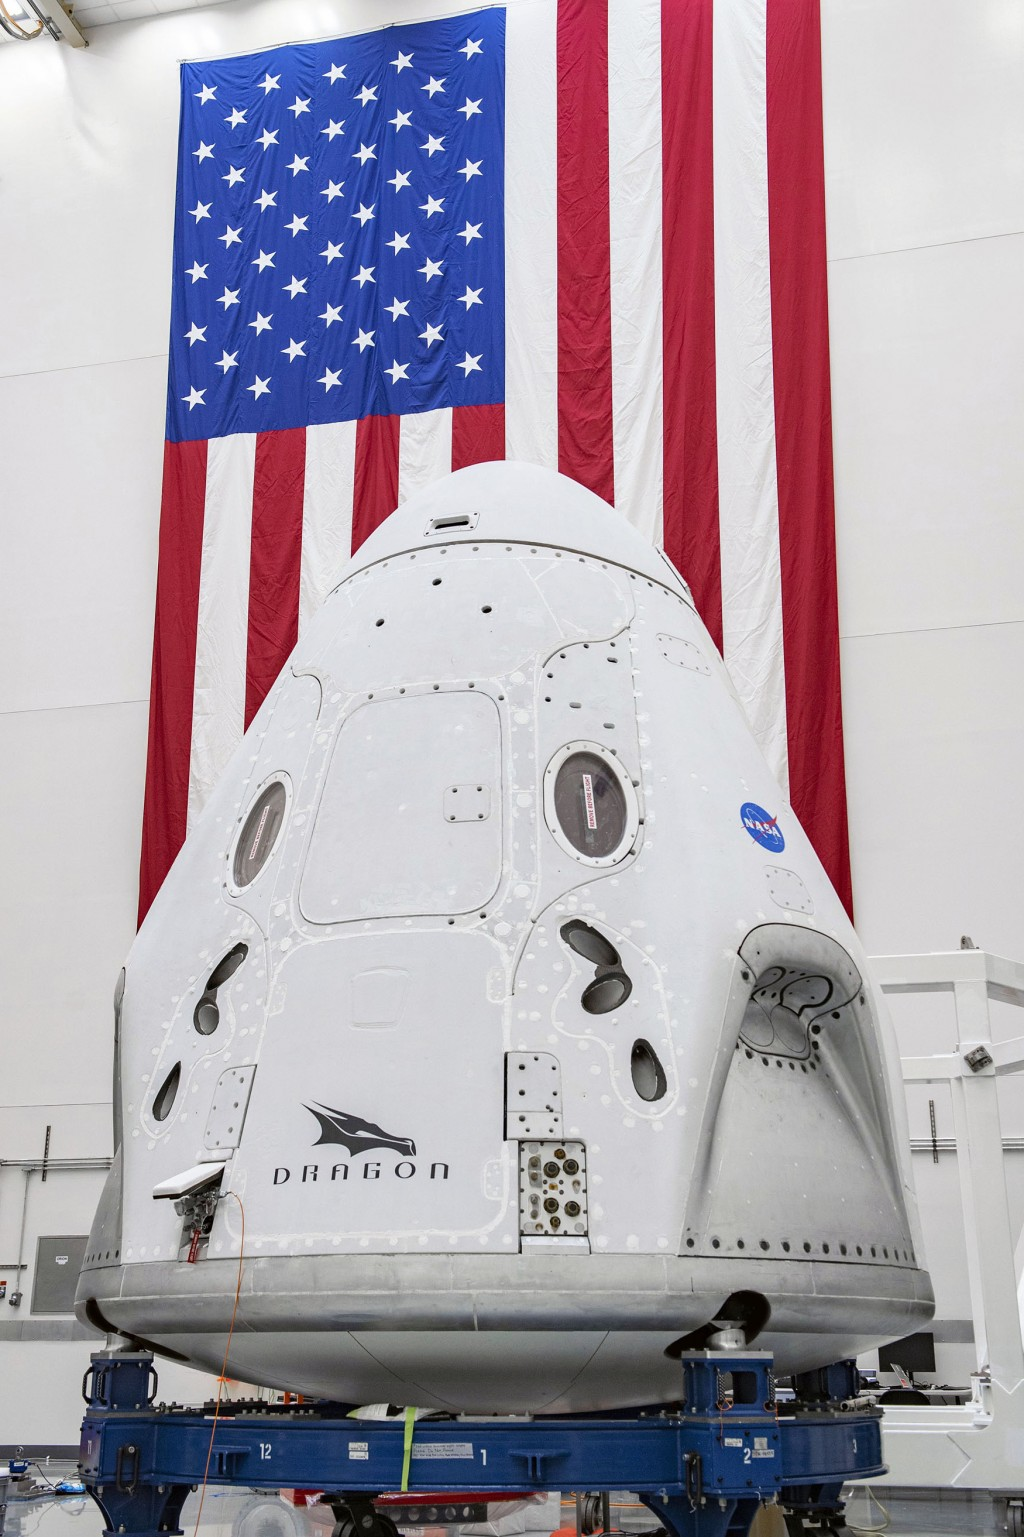 In this April 10, 2020 photo made available by SpaceX, The SpaceX Crew Dragon spacecraft undergoes final processing at Cape Canaveral Air Force Statio...